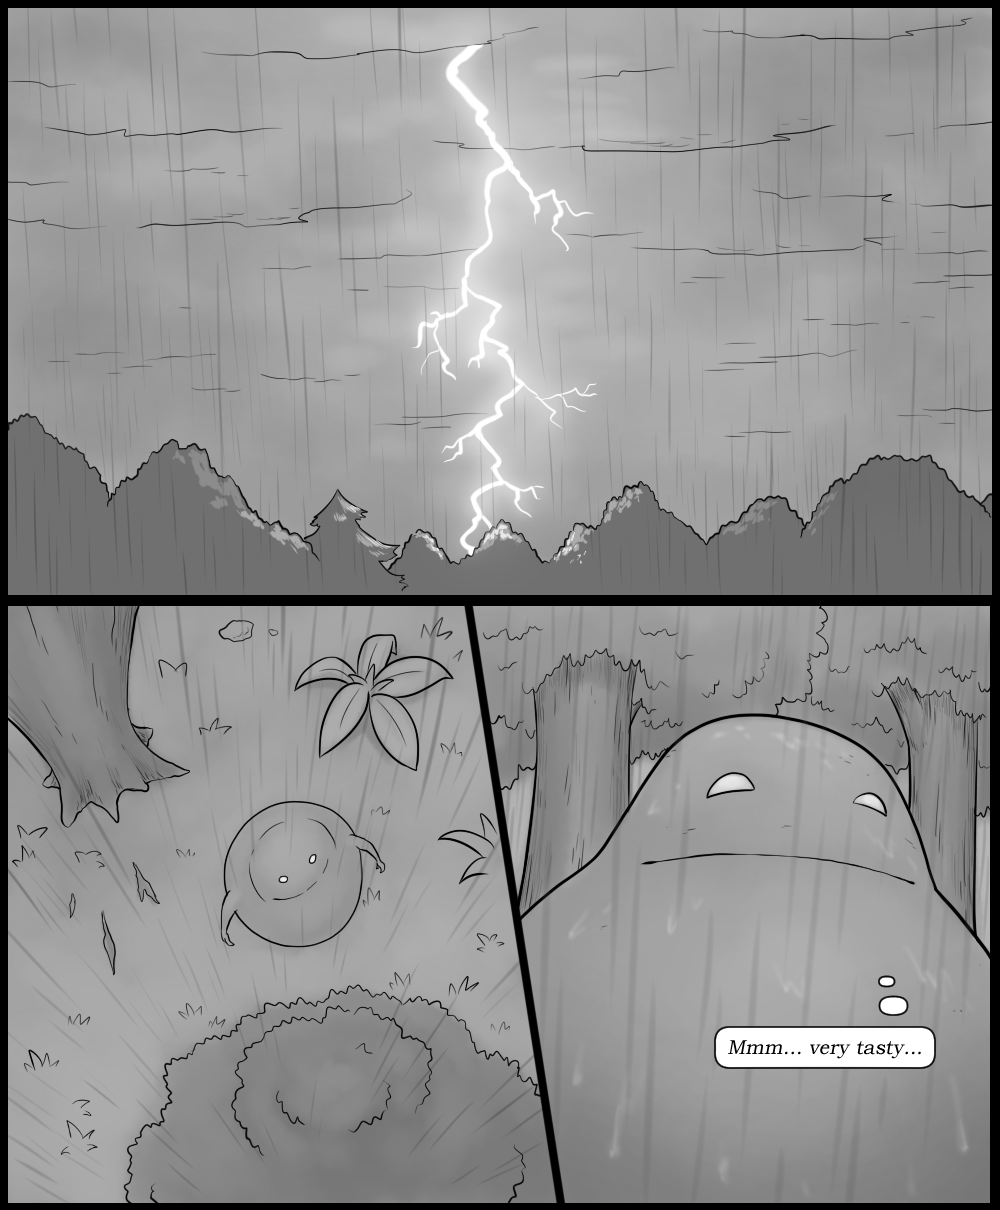 Page 26 - A meal during a storm